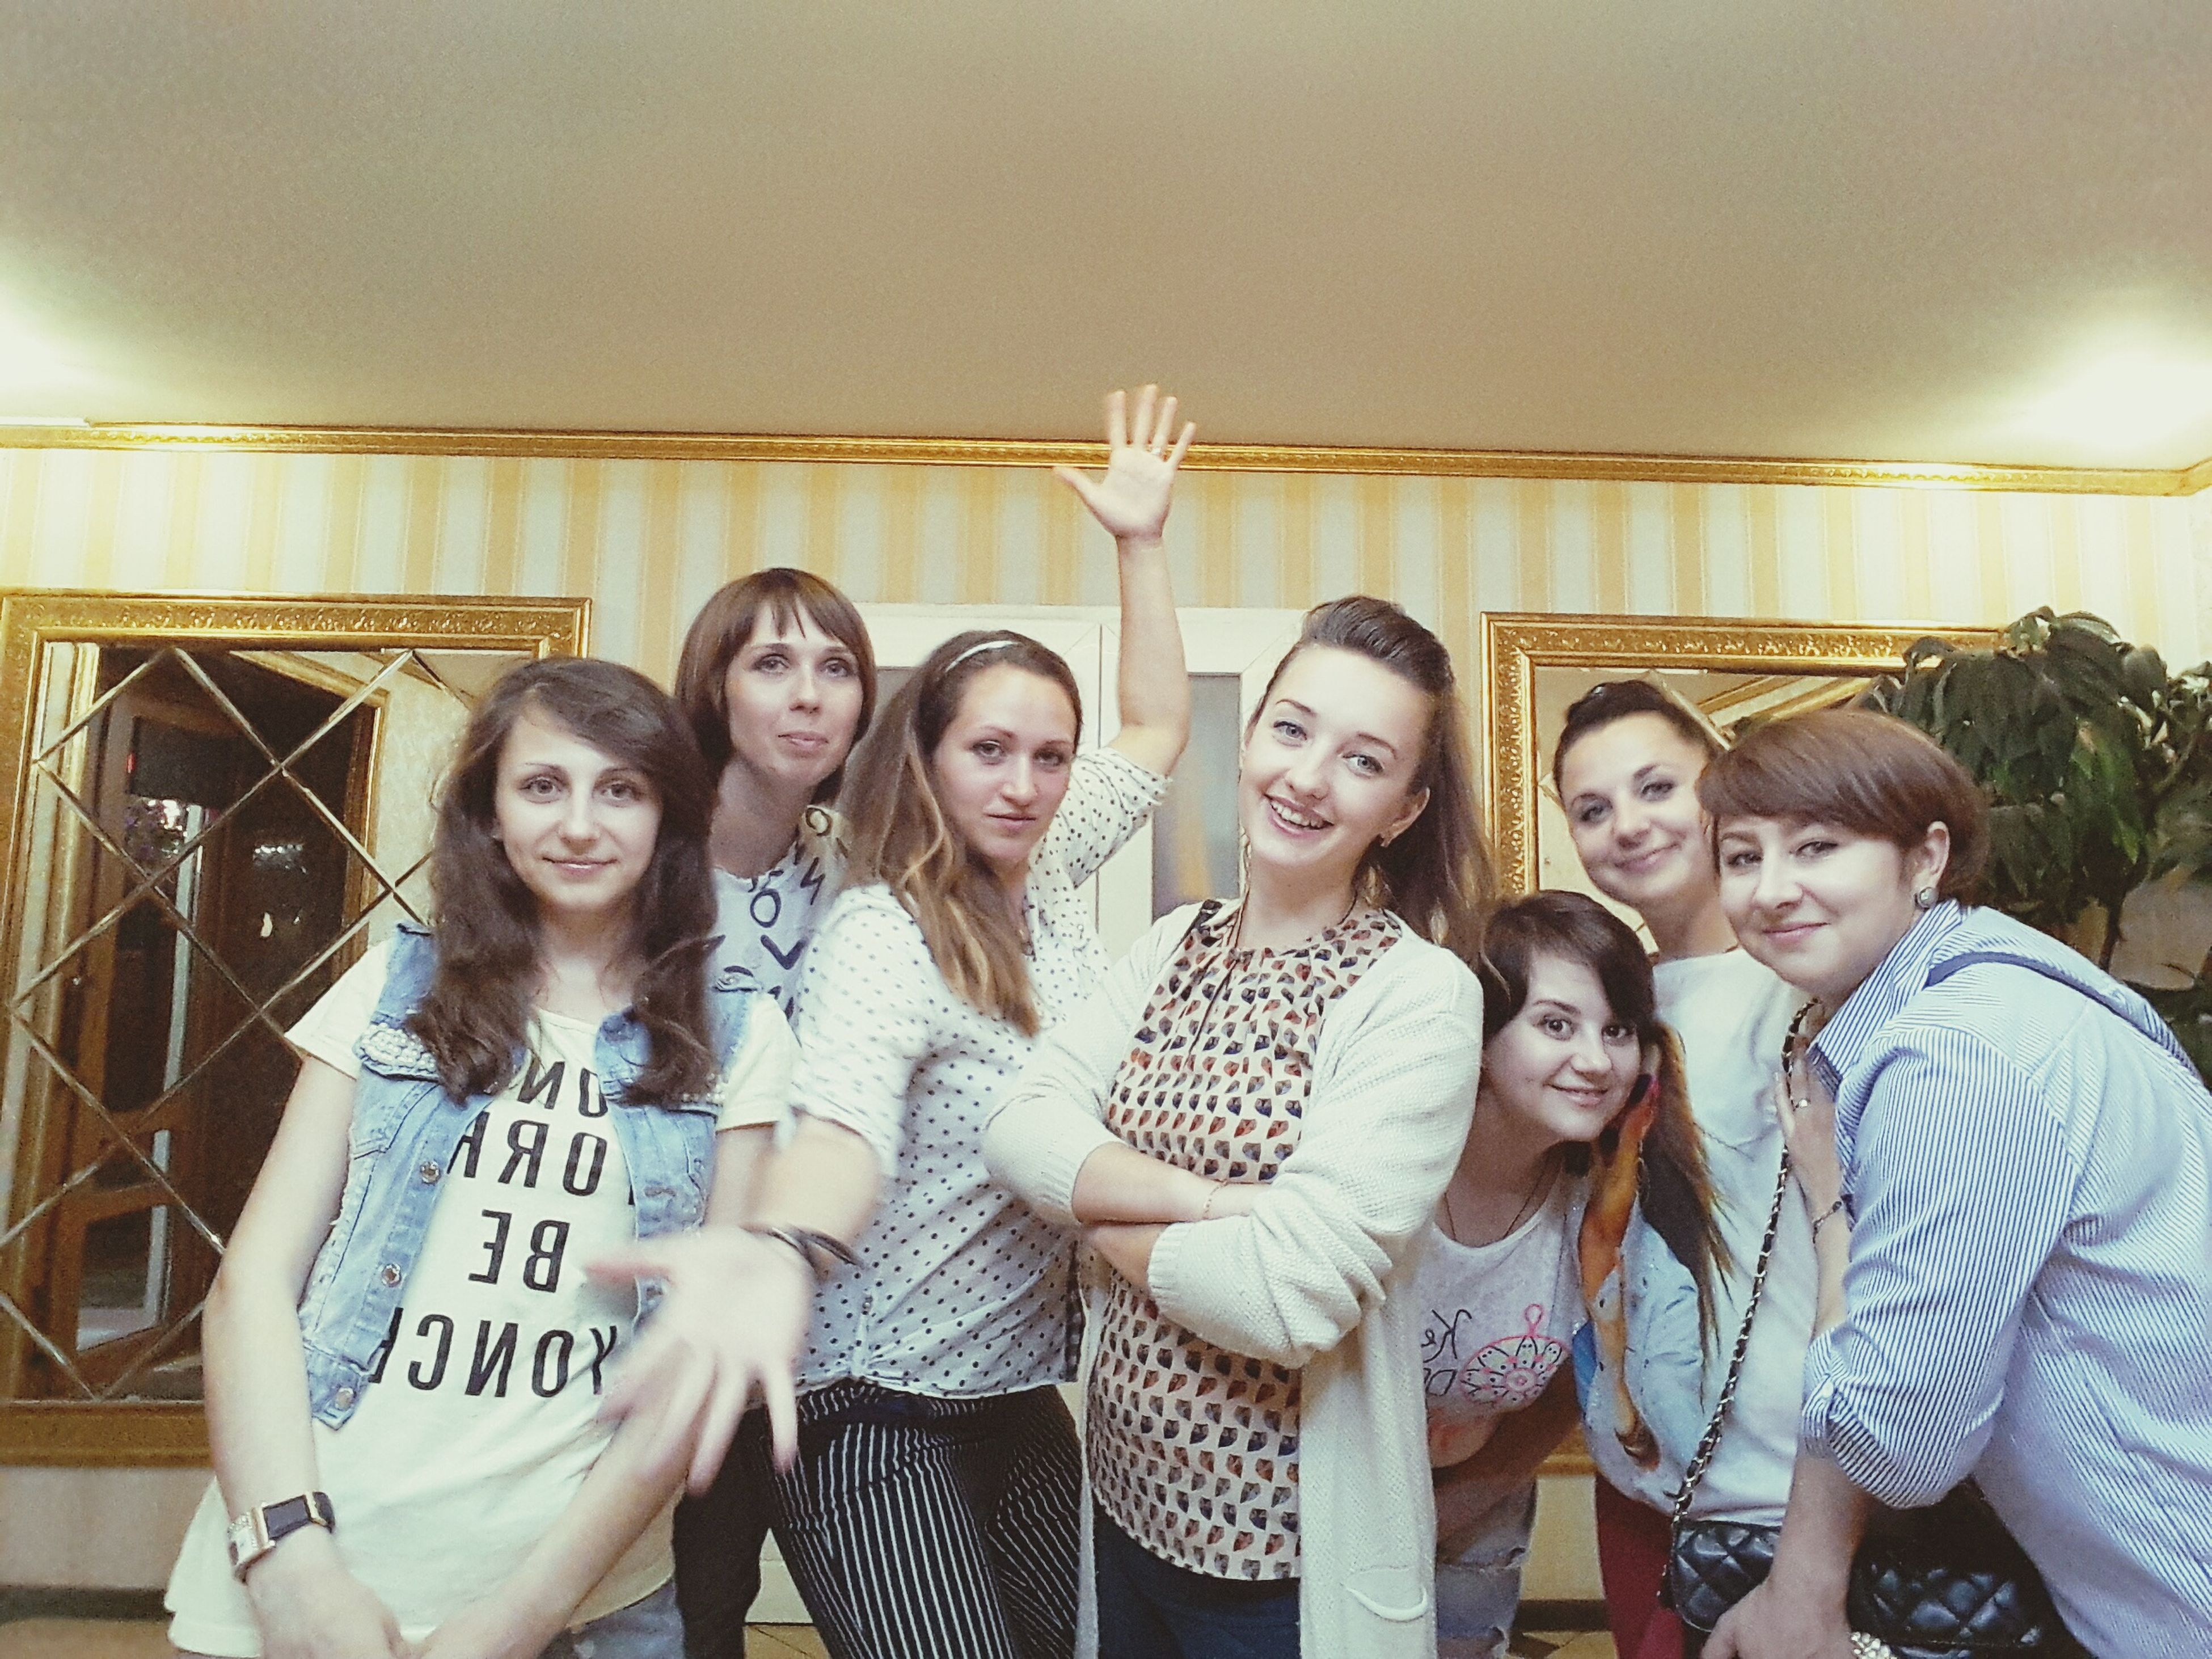 smiling, friendship, togetherness, fun, standing, bonding, leisure activity, young women, happiness, real people, looking at camera, young adult, cheerful, portrait, indoors, day